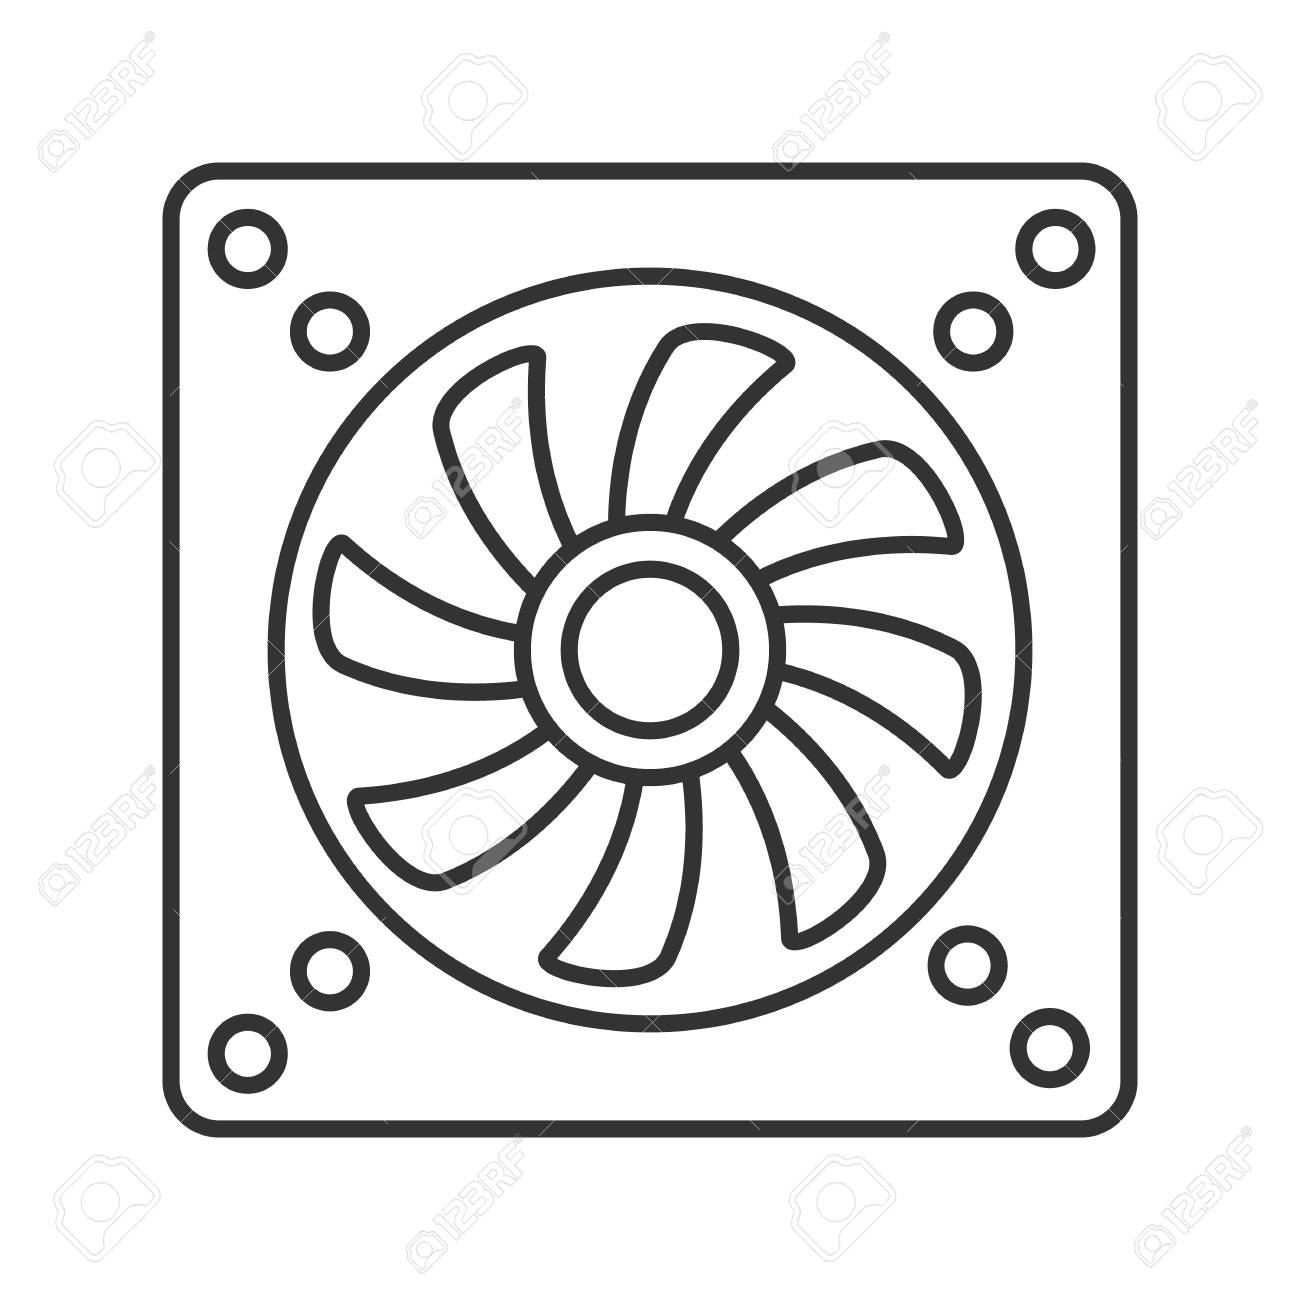 Exhaust Fan Linear Icon Conditioning Thin Line Illustration